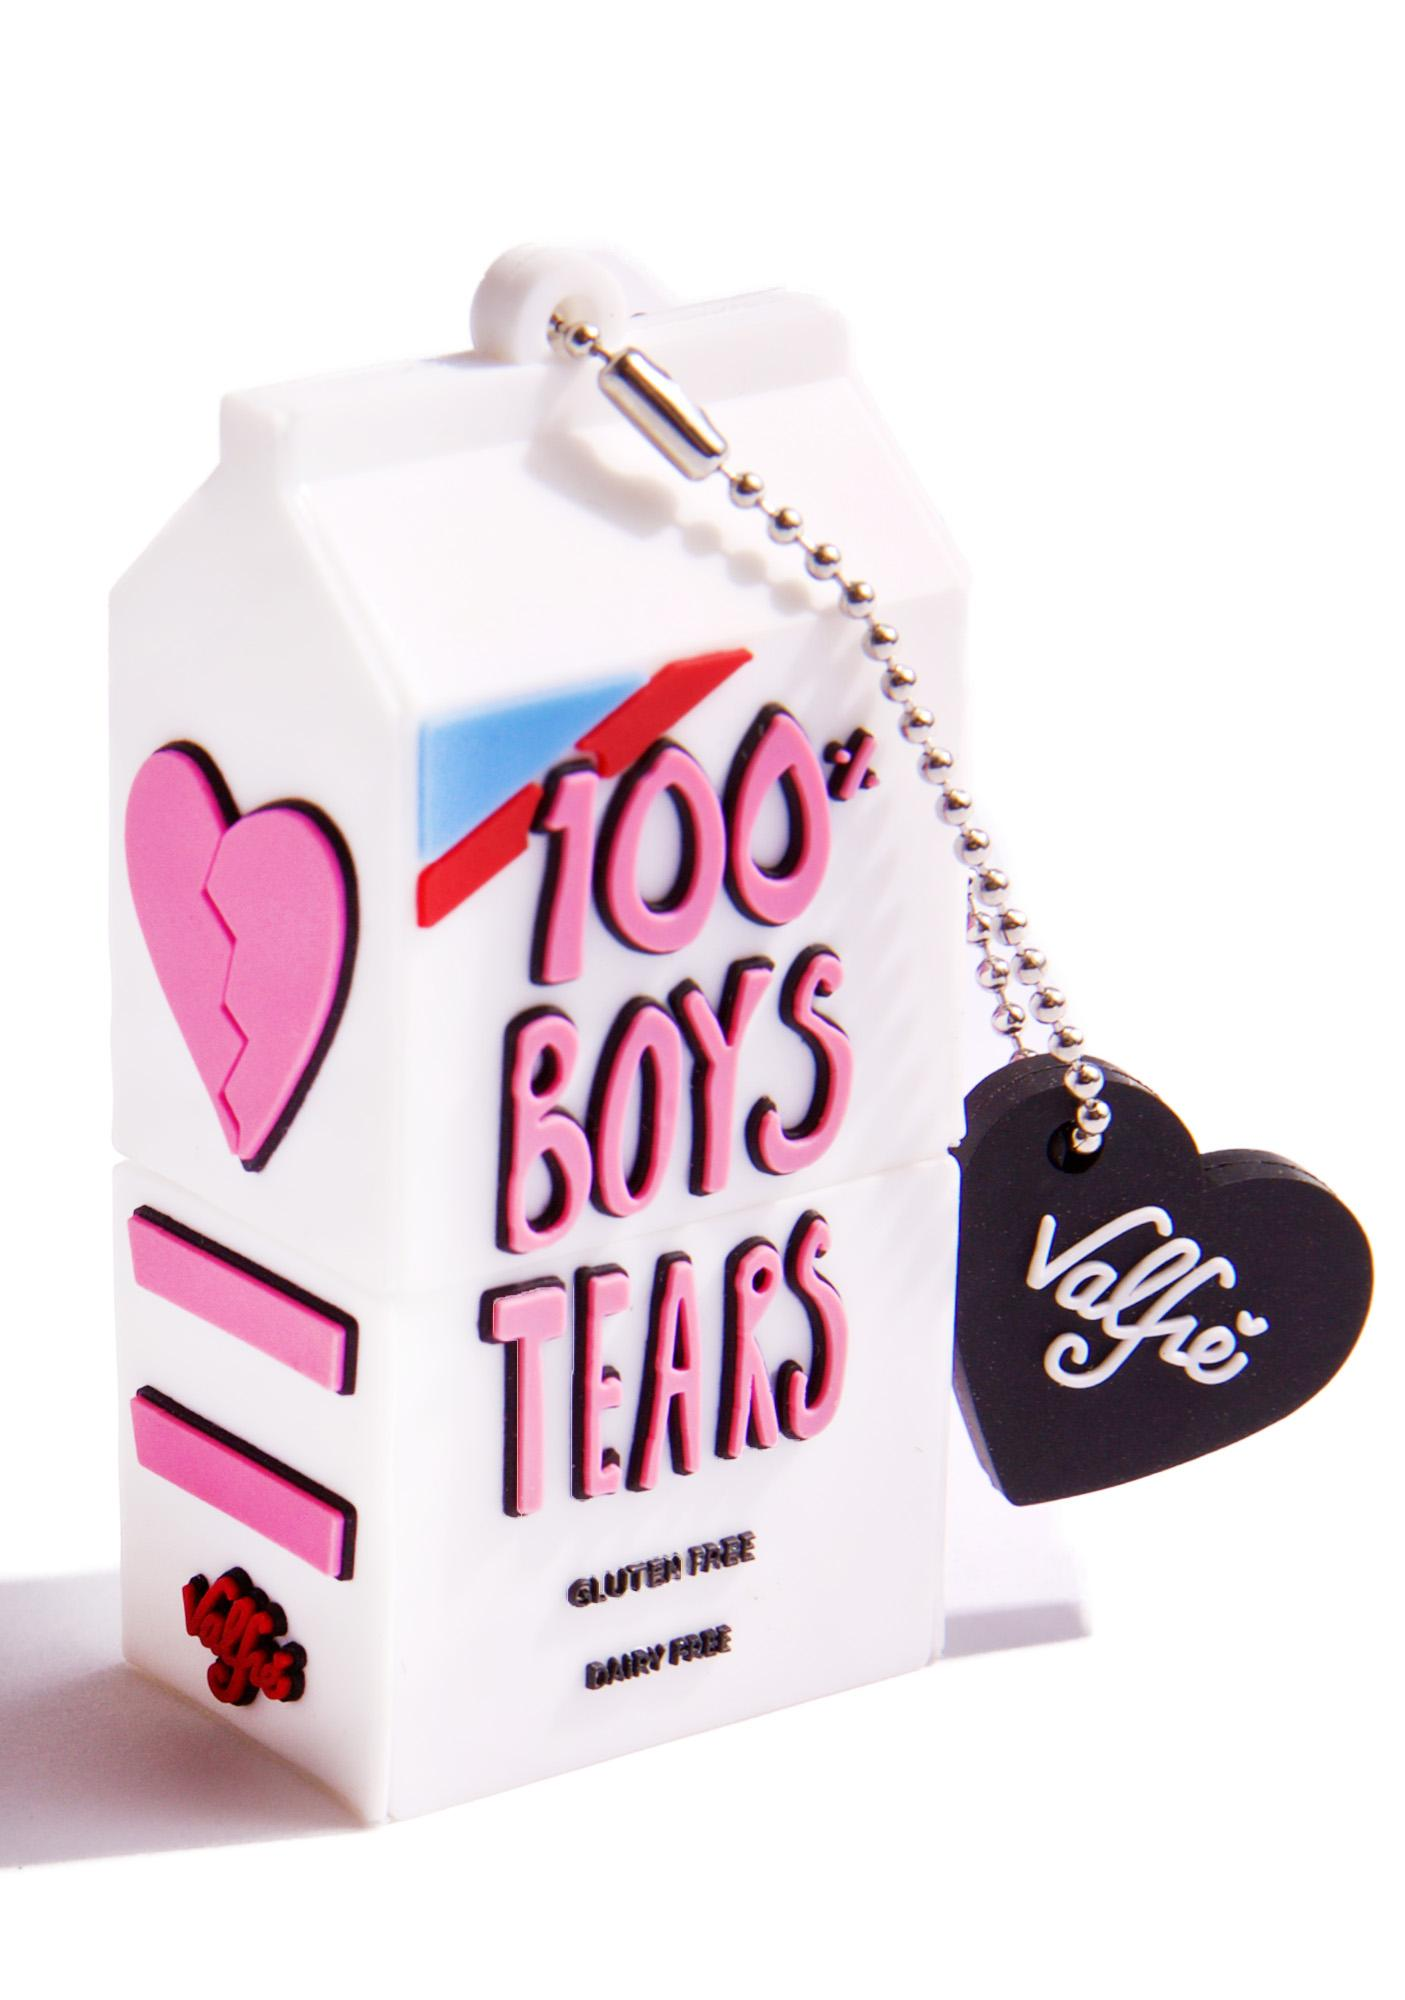 Valfré Boys Tears 16GB USB Drive